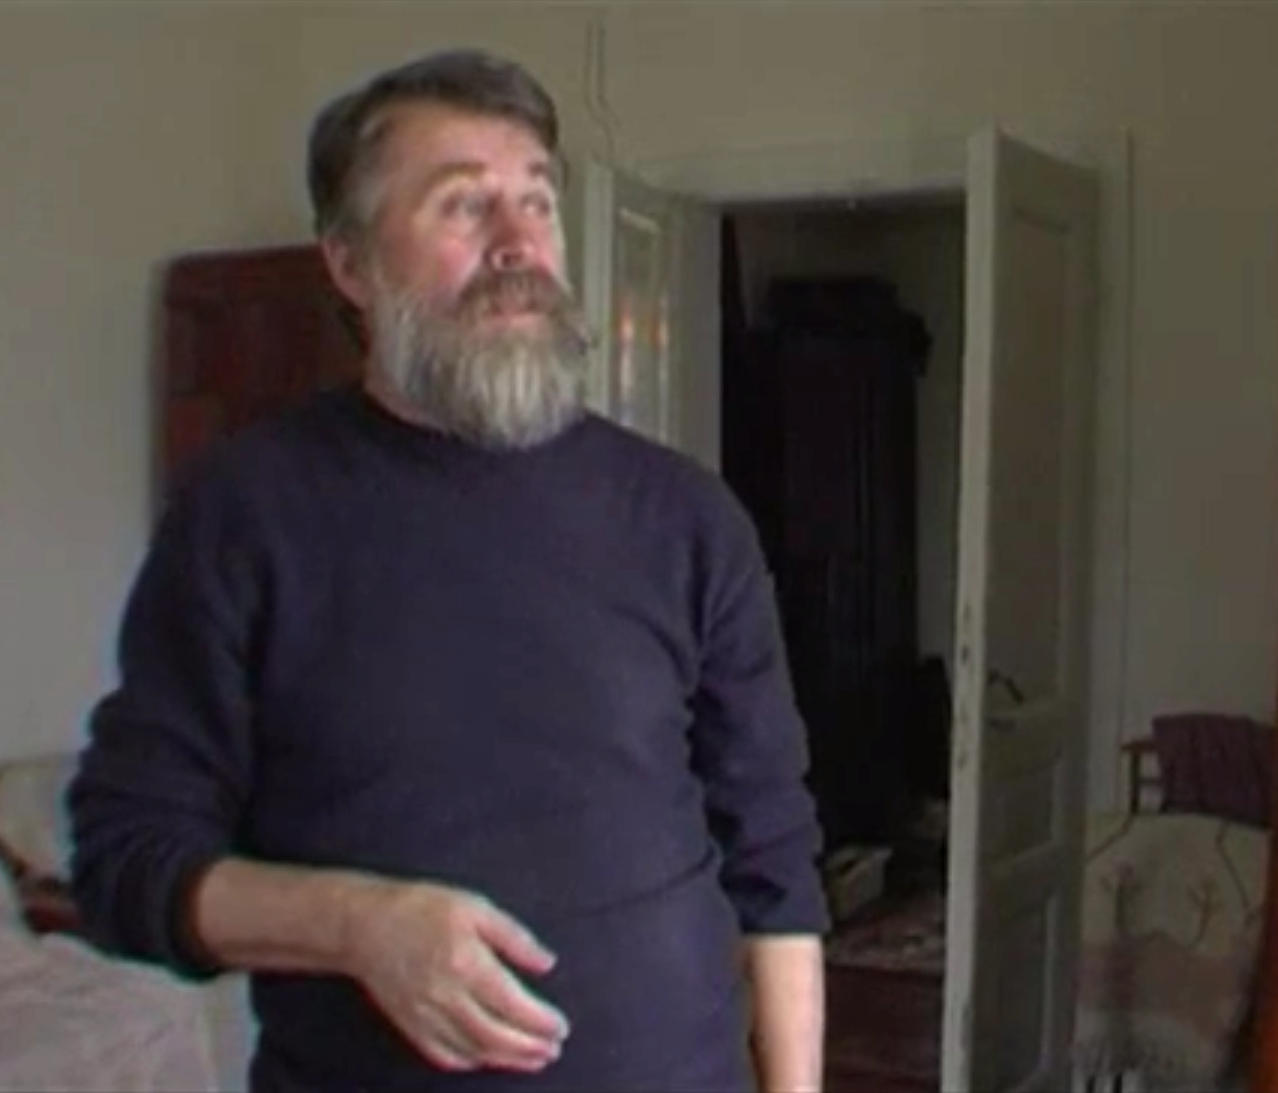 Oleh Lysheha at his home talking about axes in 2011. Tysmenytsia, Ukraine.